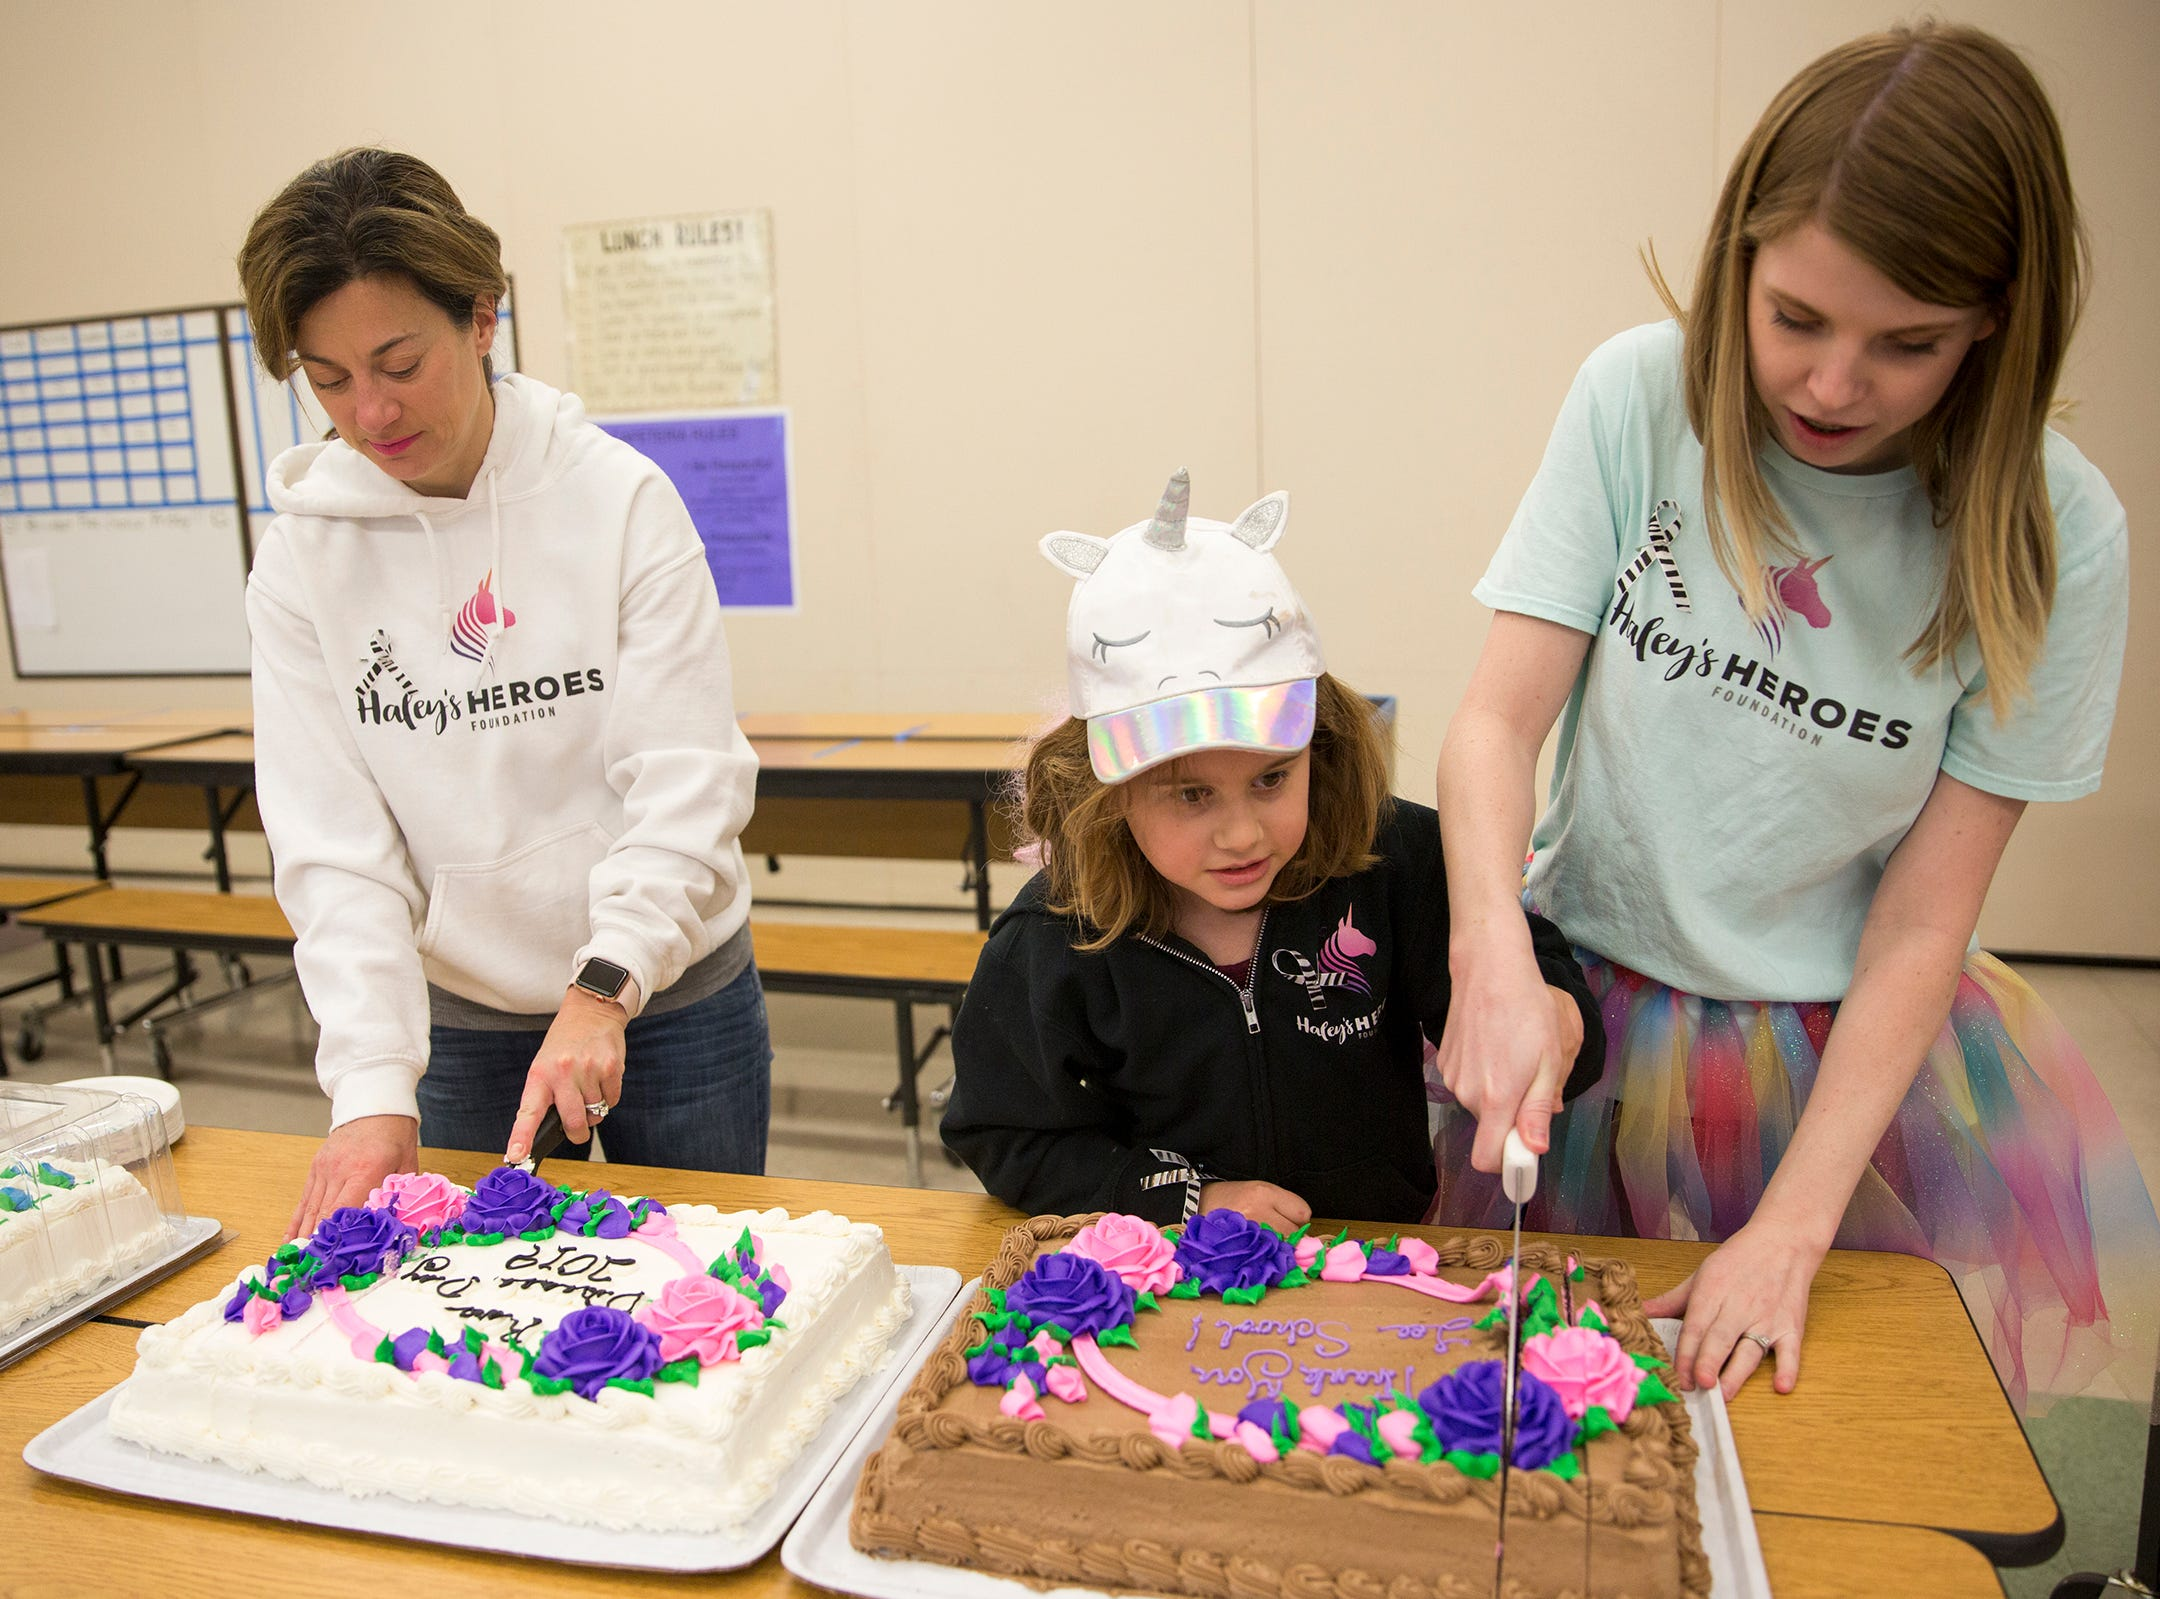 Haley Pollman, her mother Melissa Pollman (left) and instructional assistant Nichele Coria (right) cut cake for students on rare disease day at Lee Elementary School in Salem on Thursday, Feb. 28, 2019.